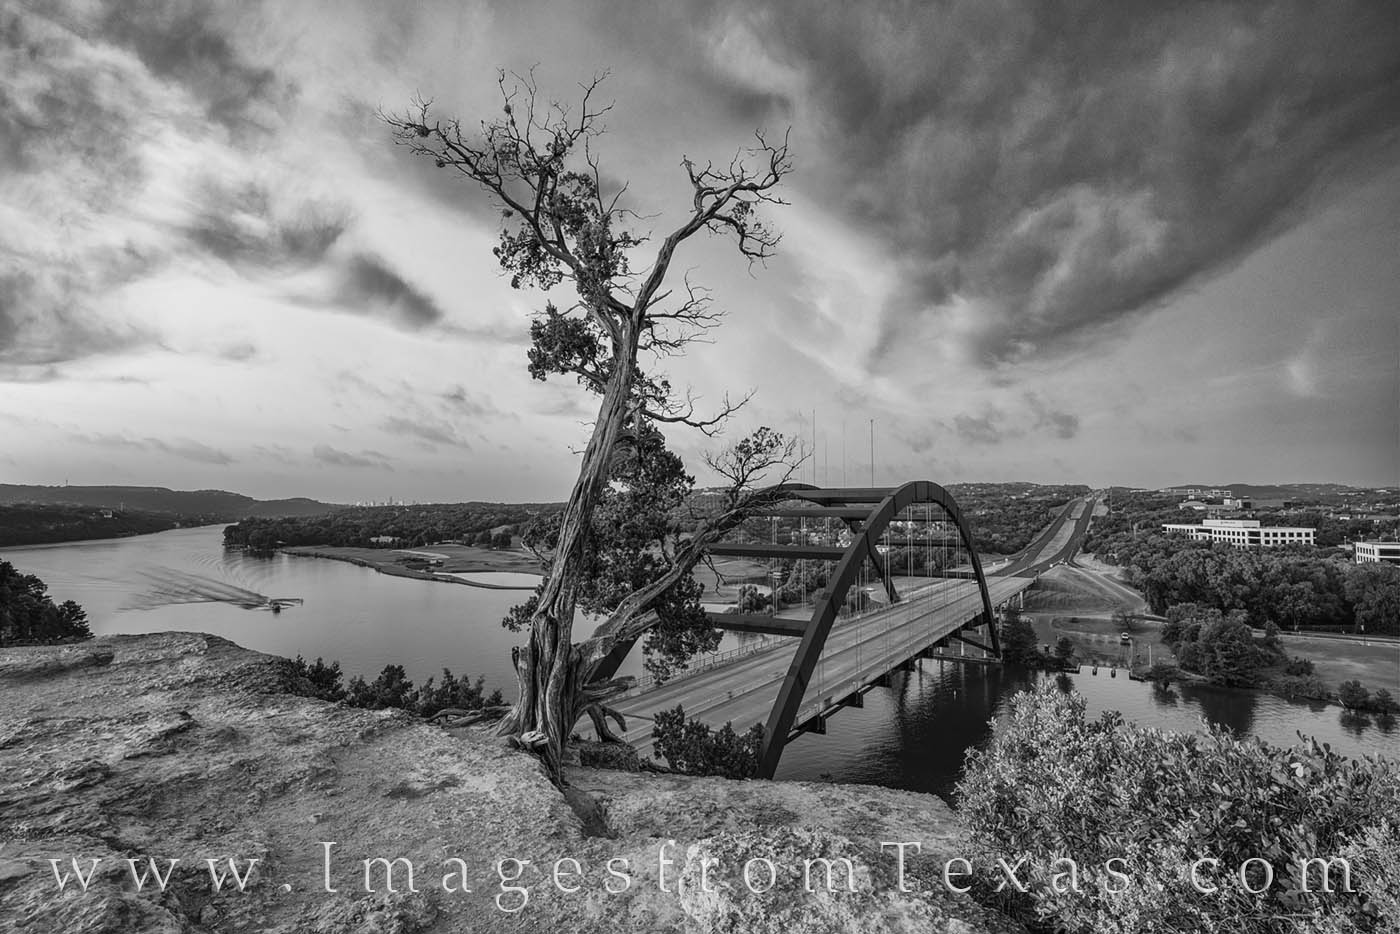 This black and white image shows the iconic Pennybacker Bridge on a beautiful sunrise in July.